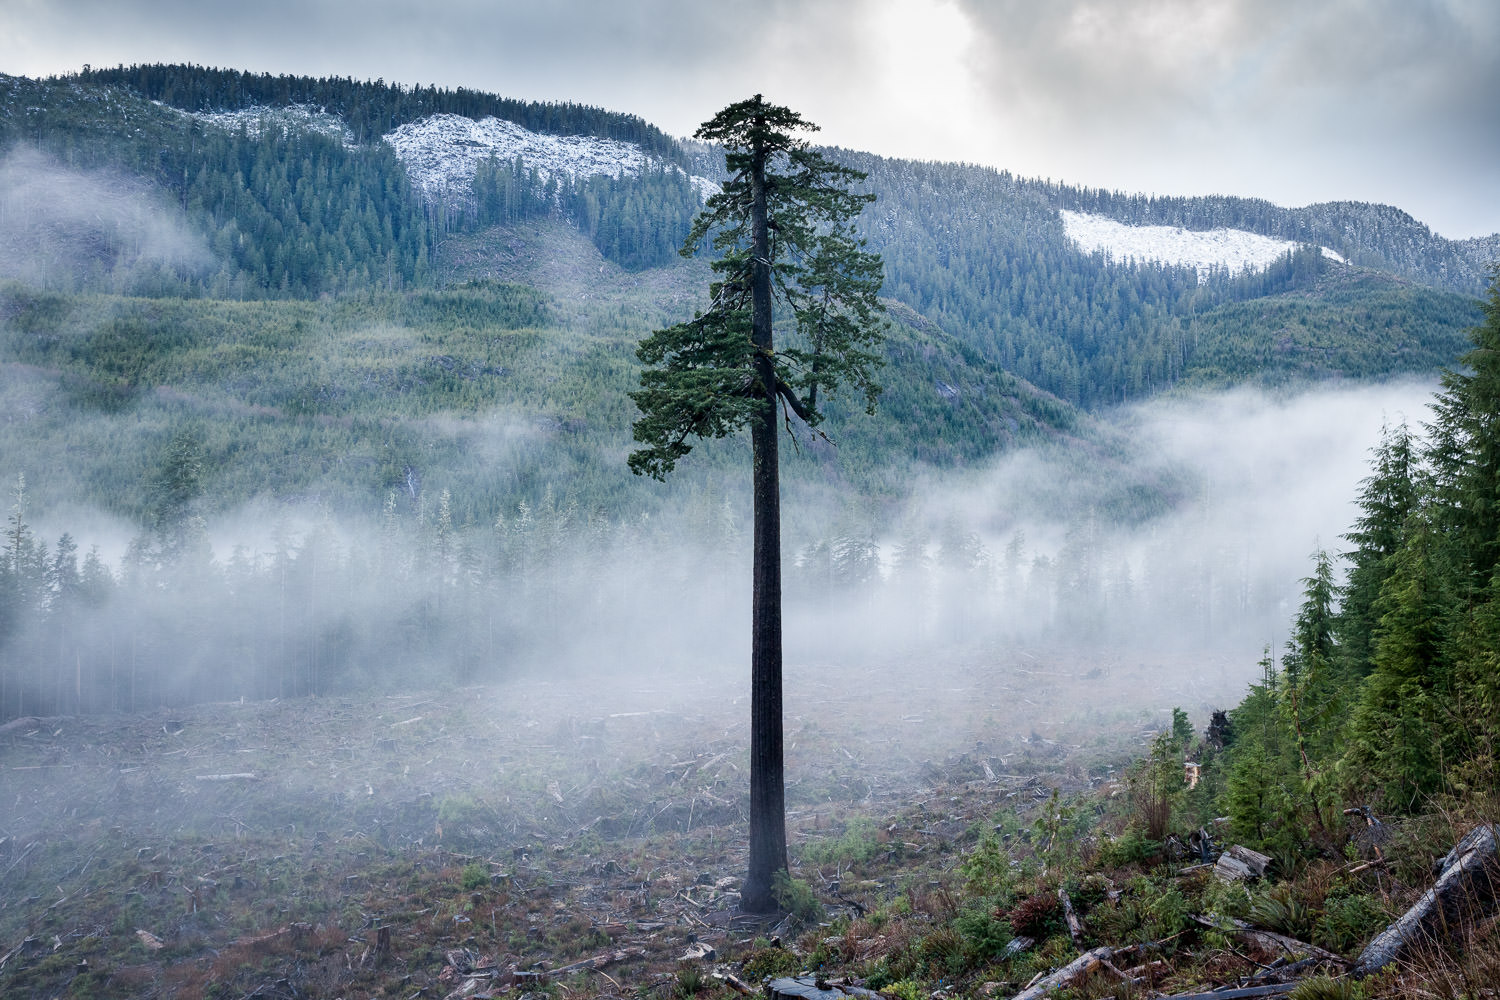 Fog drifts across the clearcut surrounding Big Lonely Doug in winter time. This might be my favourite photo of BLD. I love the way the passing fog acted as backdrop for the tree and set the solemn mood. Doug has become quite the star over the past few years, with people coming from around the world to pay their respects. Although he's lost some of his closest relatives, I hope he senses that we humans do indeed care about him and the fate of our remaining ancient forests as well.  Canon 5D MK2   24-70 f/4L IS lens   1/125 sec   f/5.6   ISO 1000